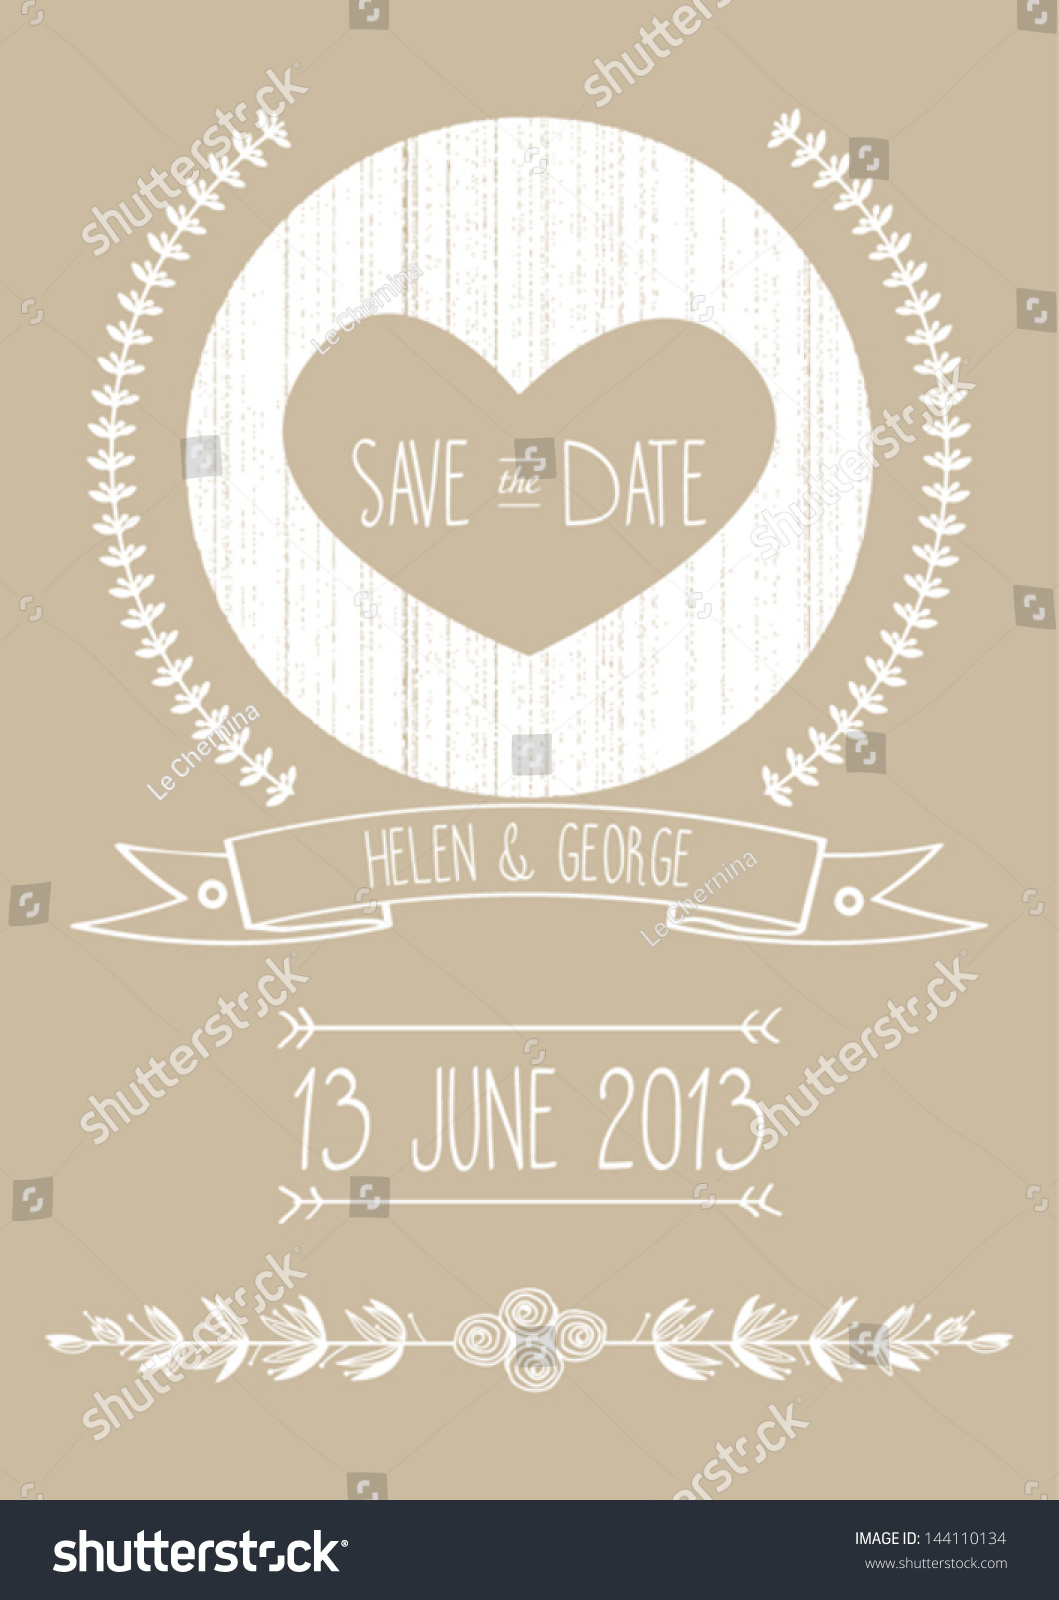 Save The Date Wedding Invitation Template Vector Illustration ...